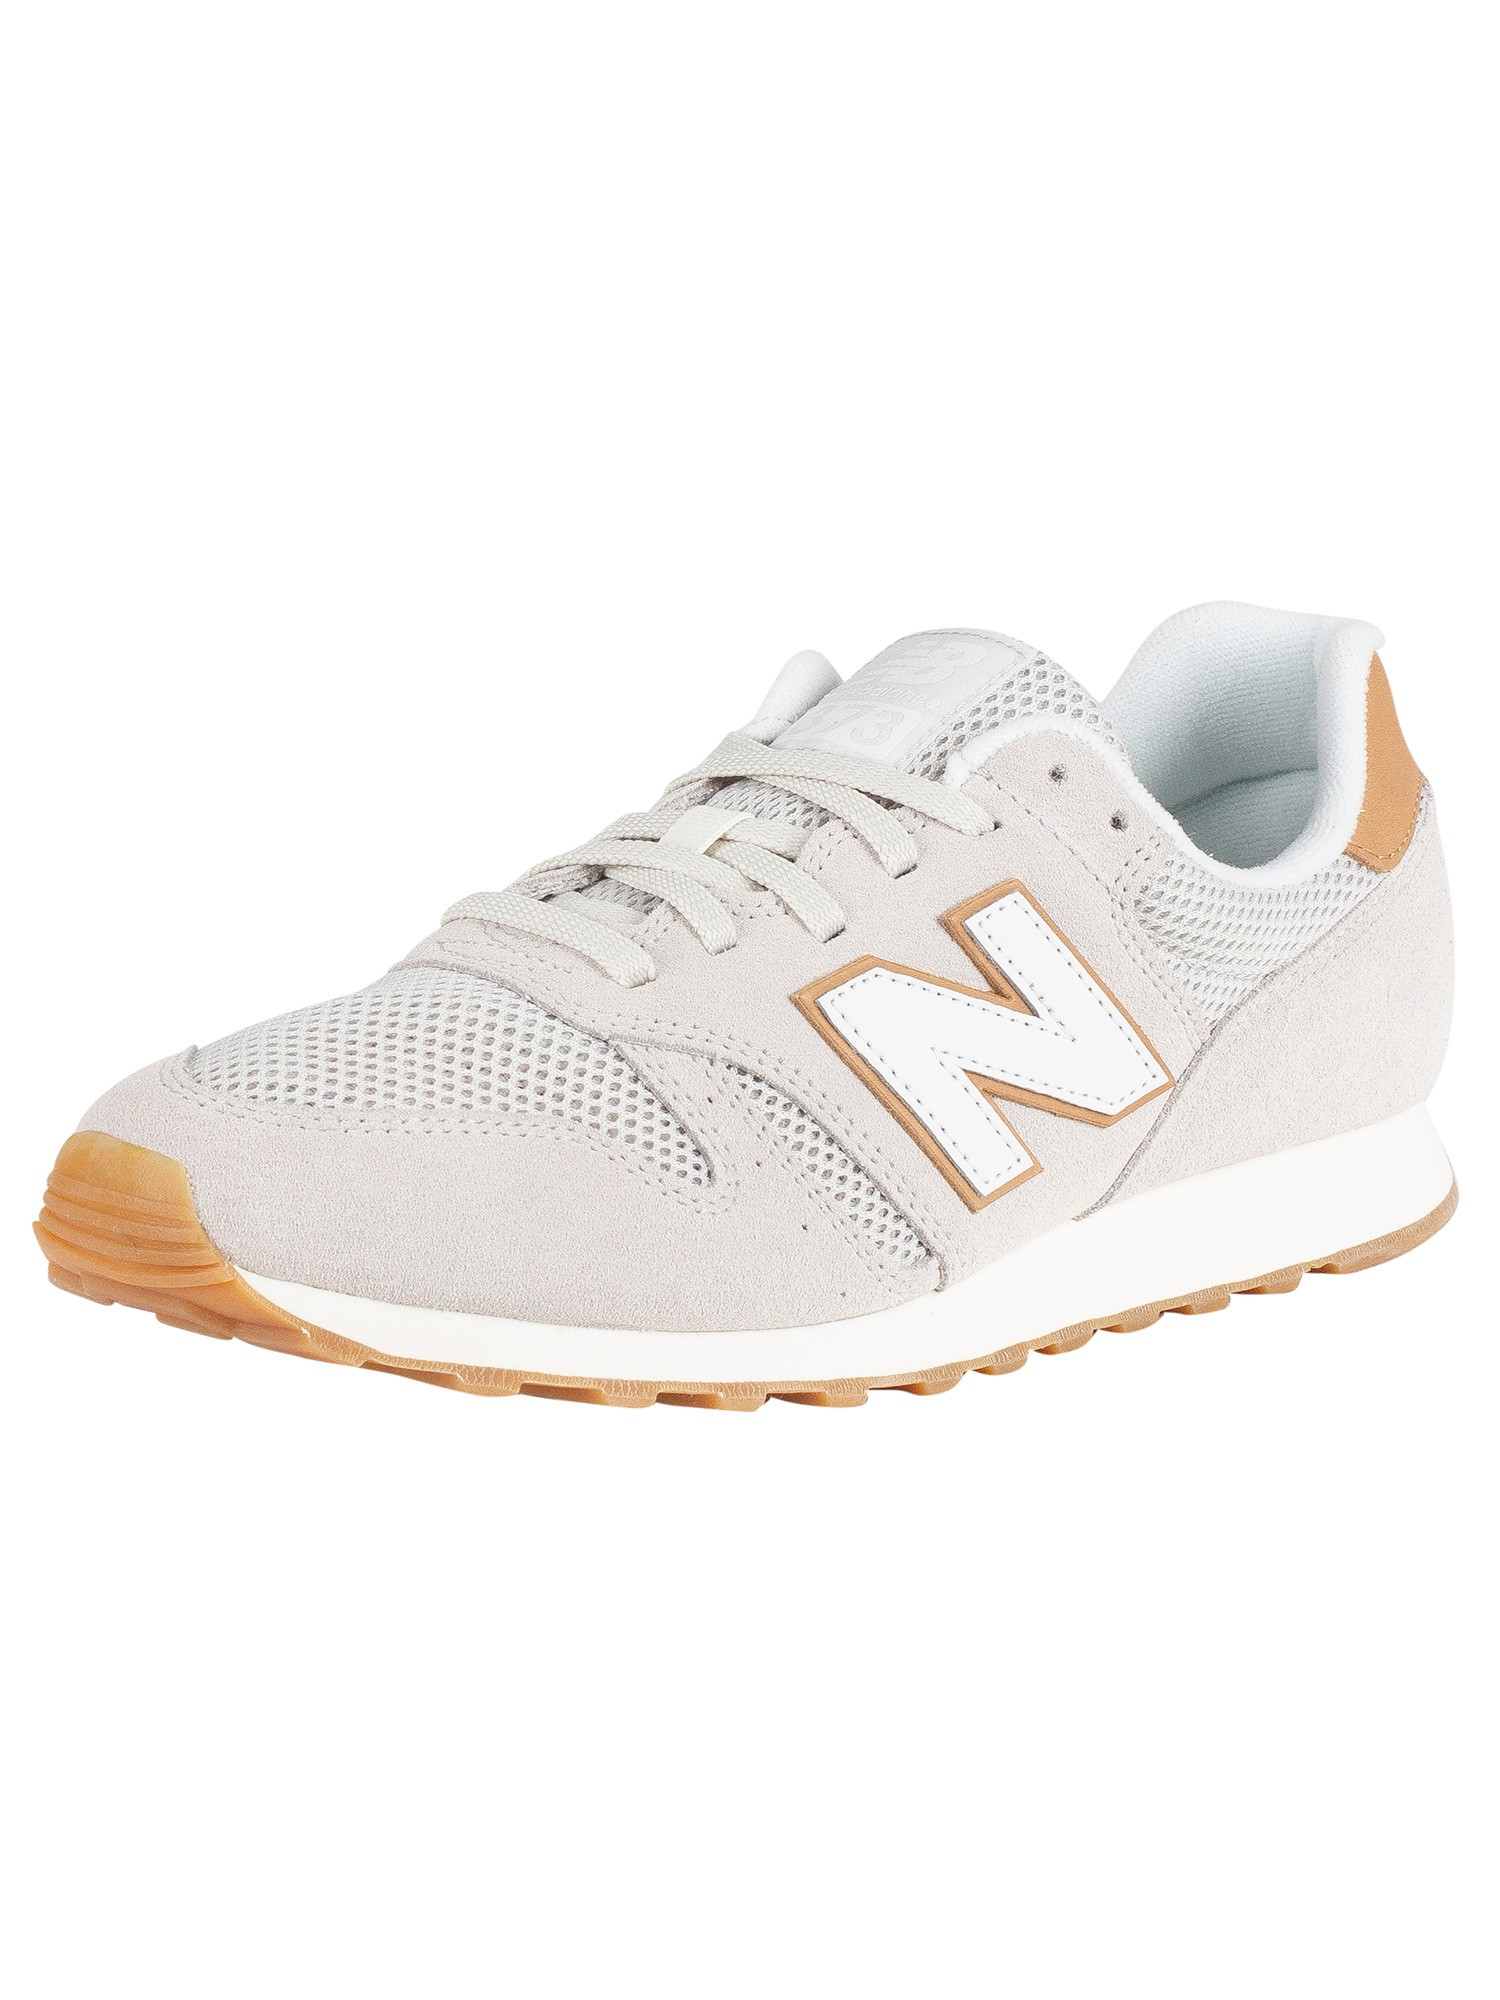 official photos ed076 3061d New Balance 373 Suede Trainers - Beige/Tan